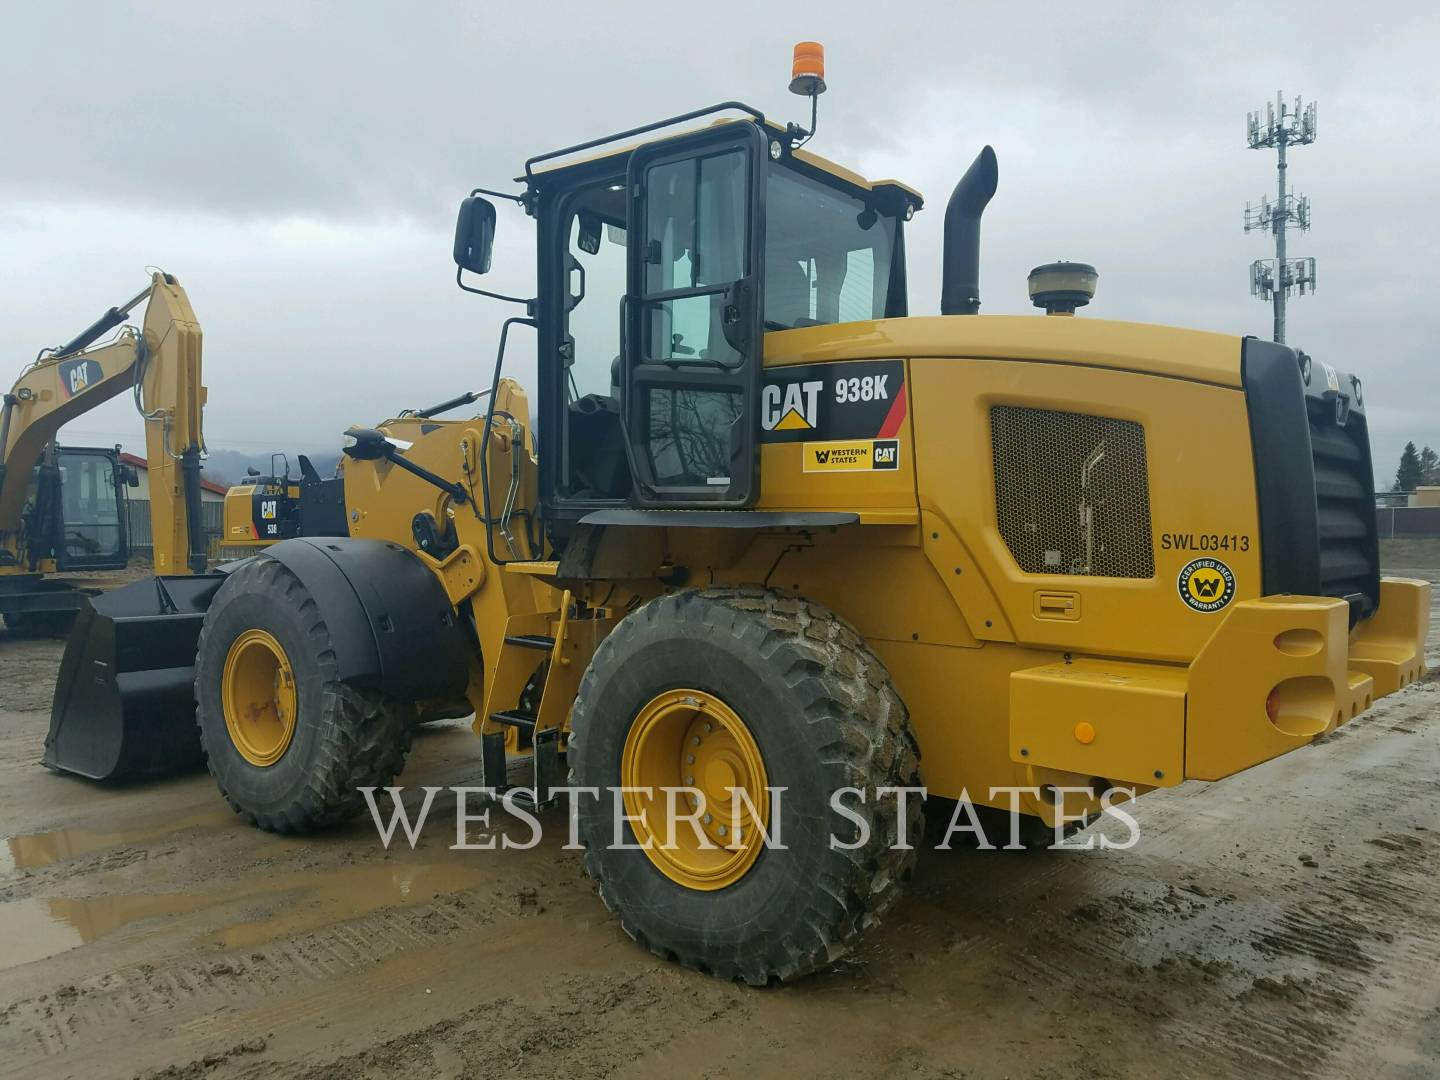 2014 CATERPILLAR 938K image2